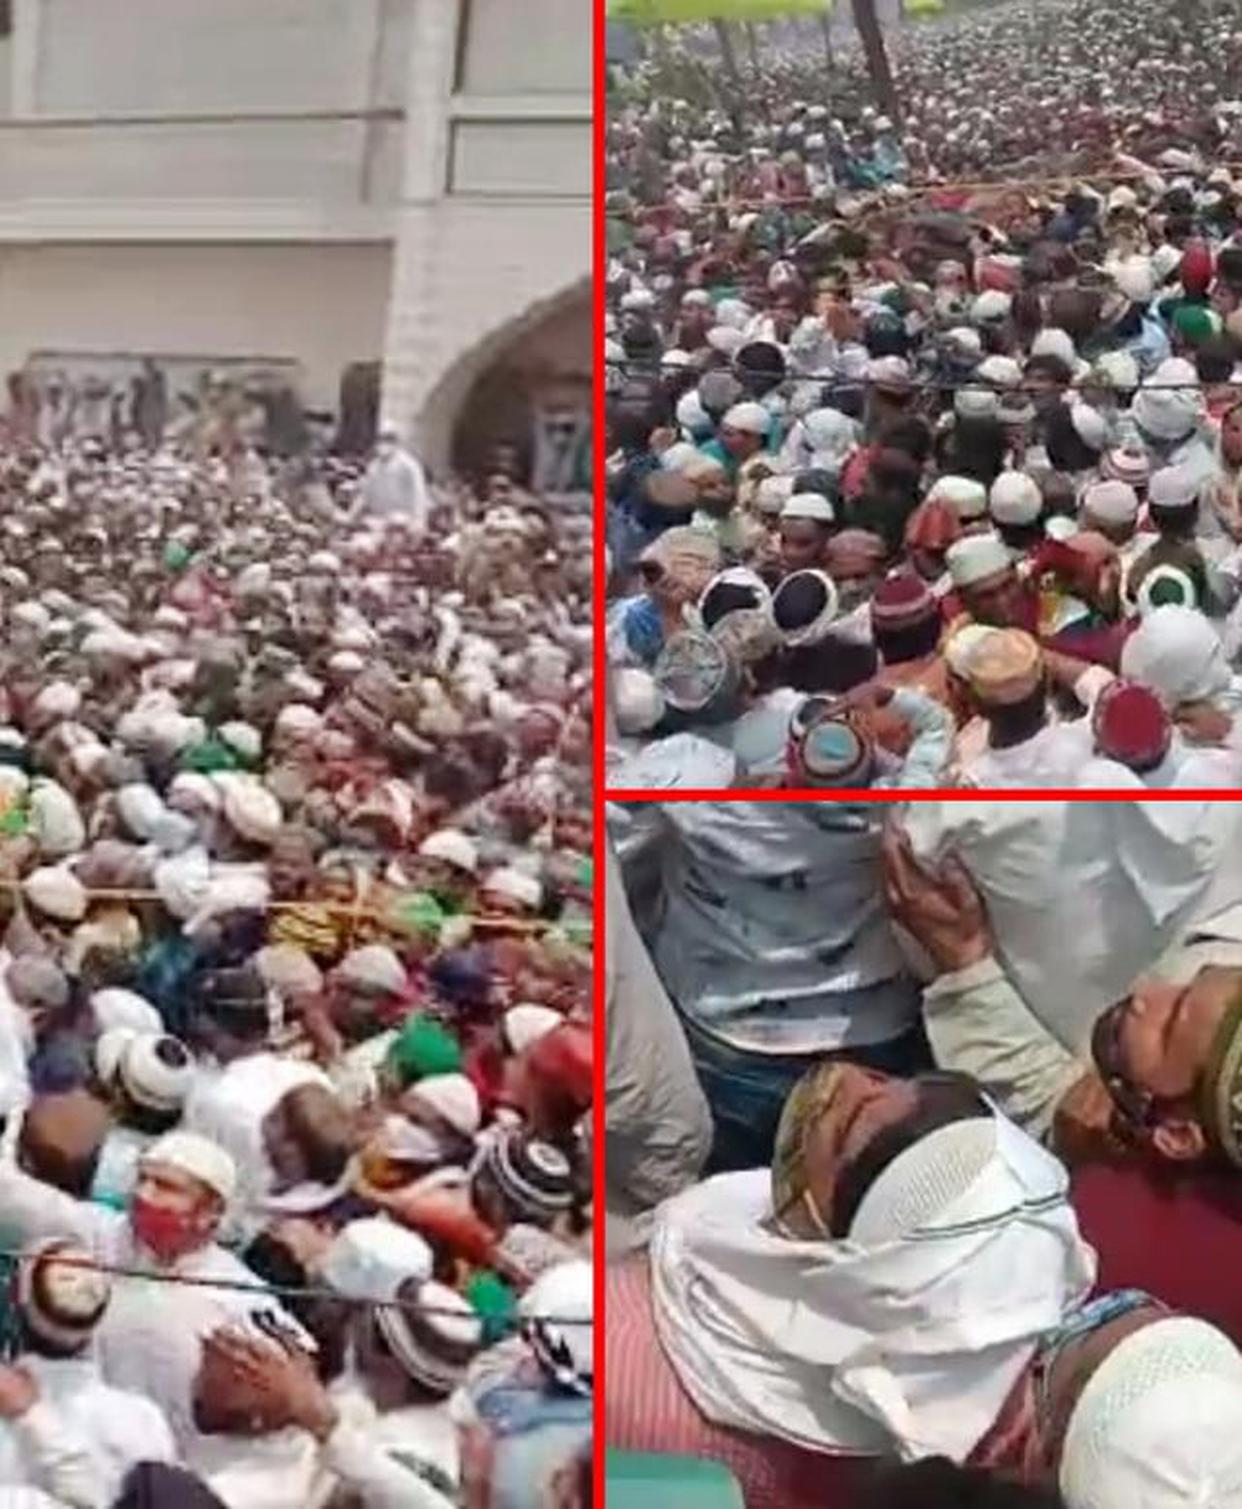 COVID-19: Lakhs gather for funeral procession in UP violating curbs, FIR  registered